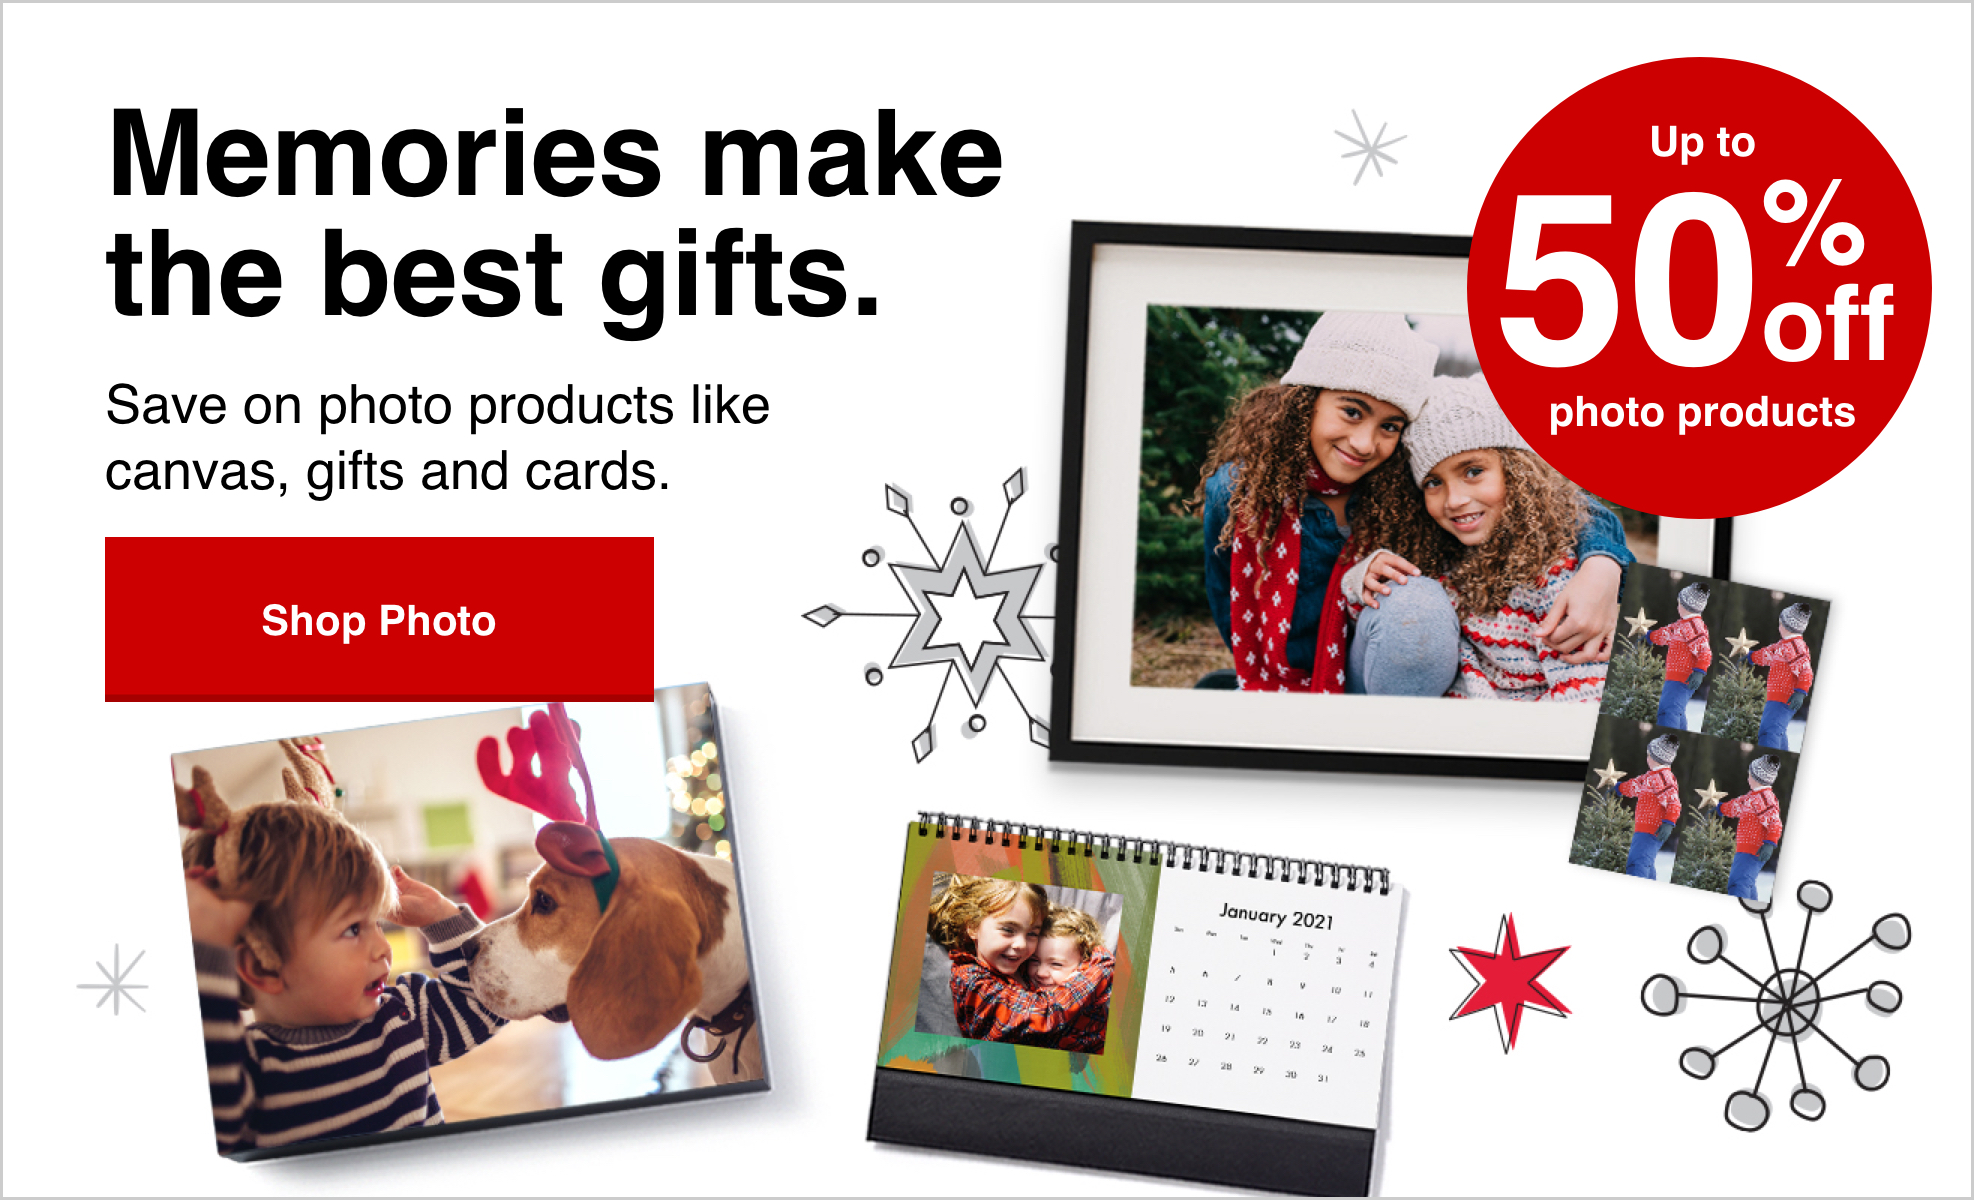 Save up to 50% on Photo products.Shop our deals now.